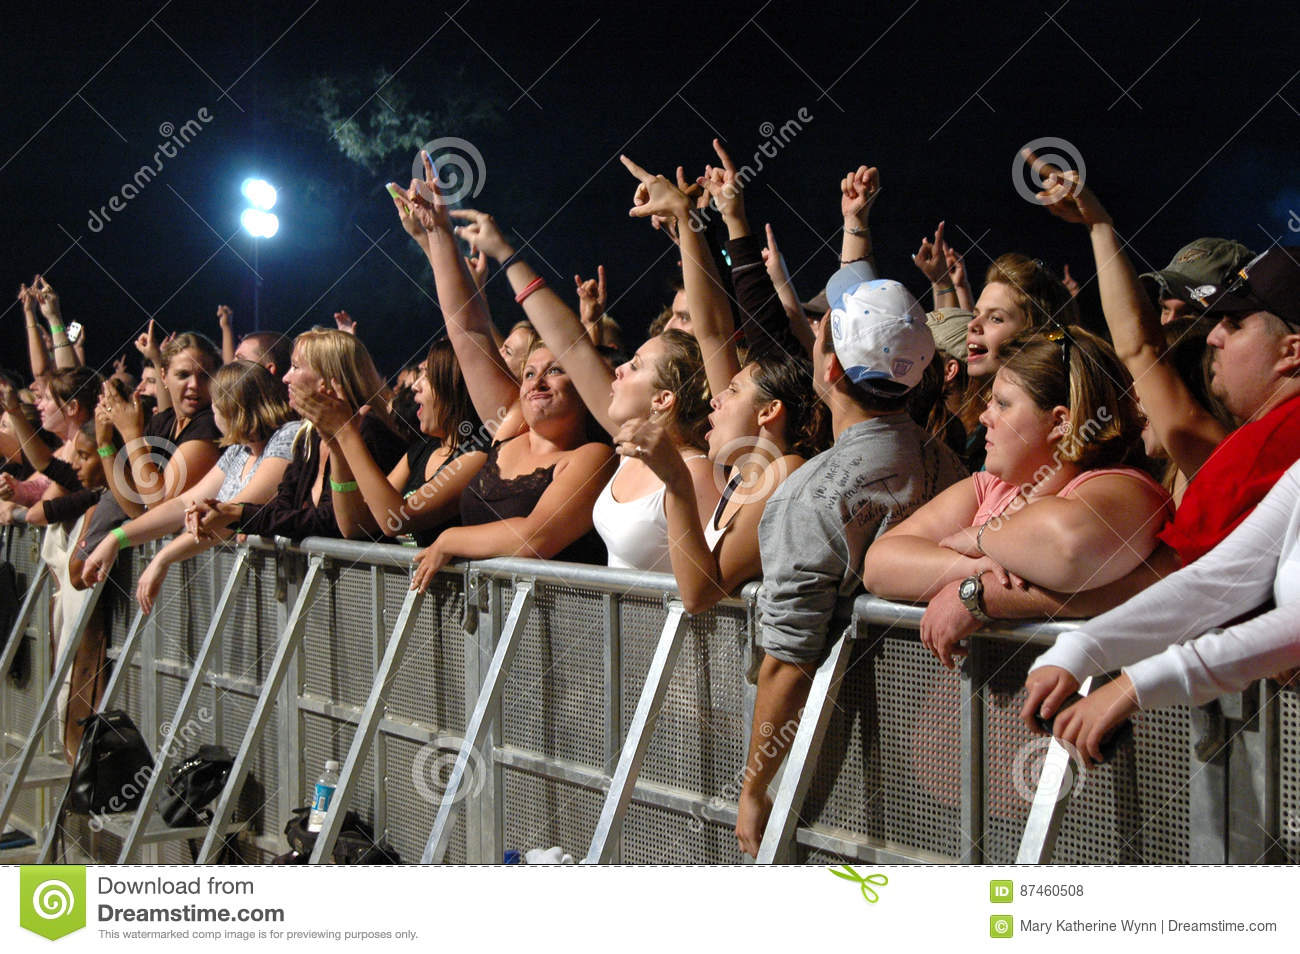 Fans taking pictures with cell phone behind barrier stock photo - Editorial Stock Photo Download Concert Crowd Cheering Behind Barrier